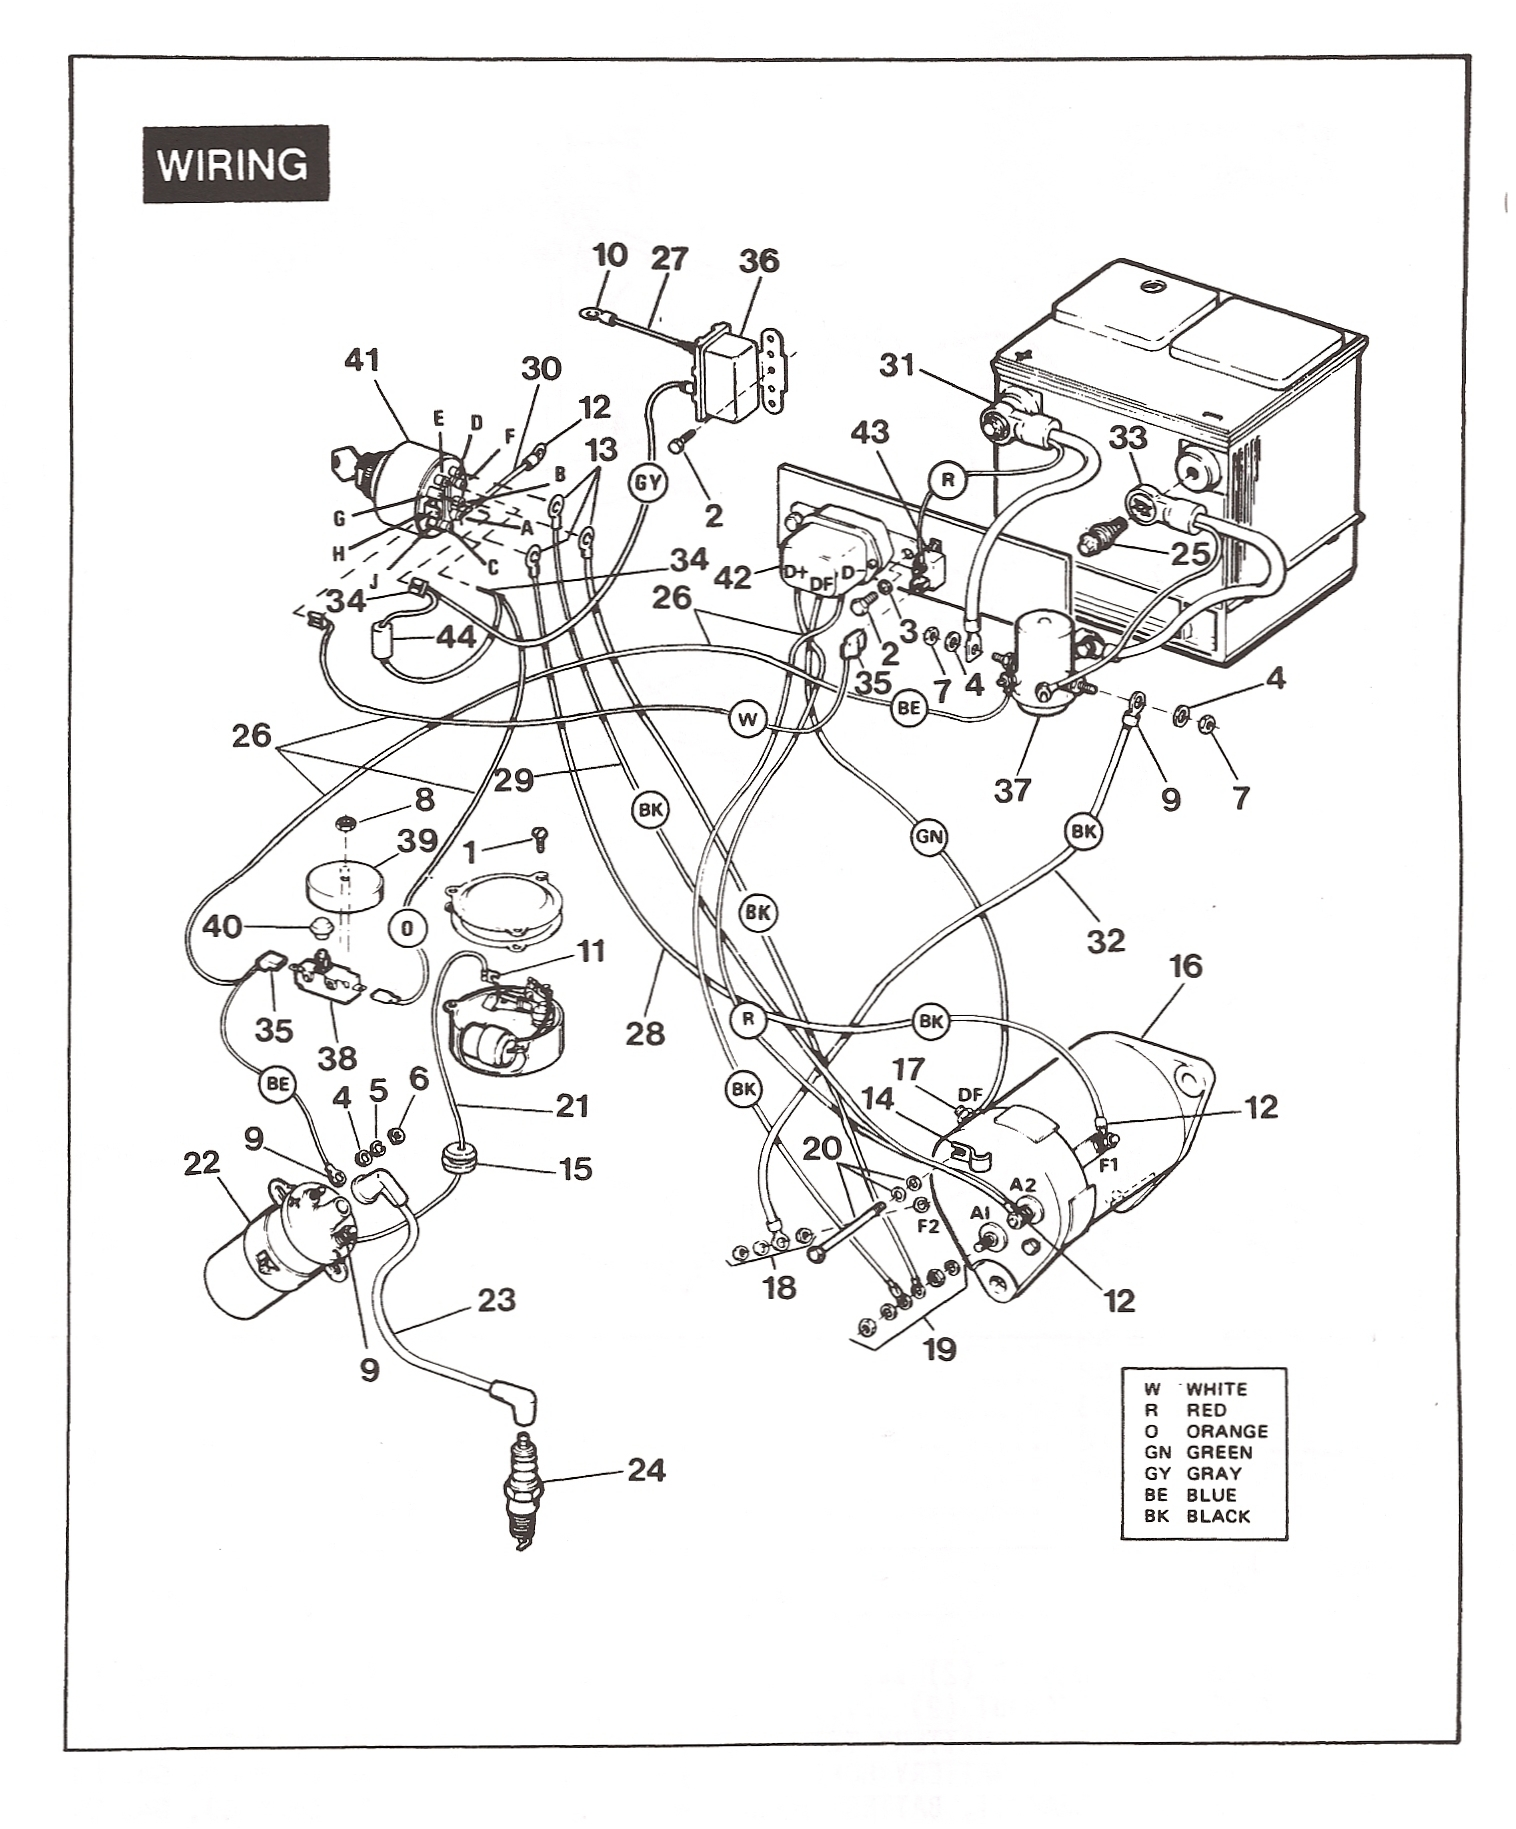 Gallery on taylor dunn wiring diagram